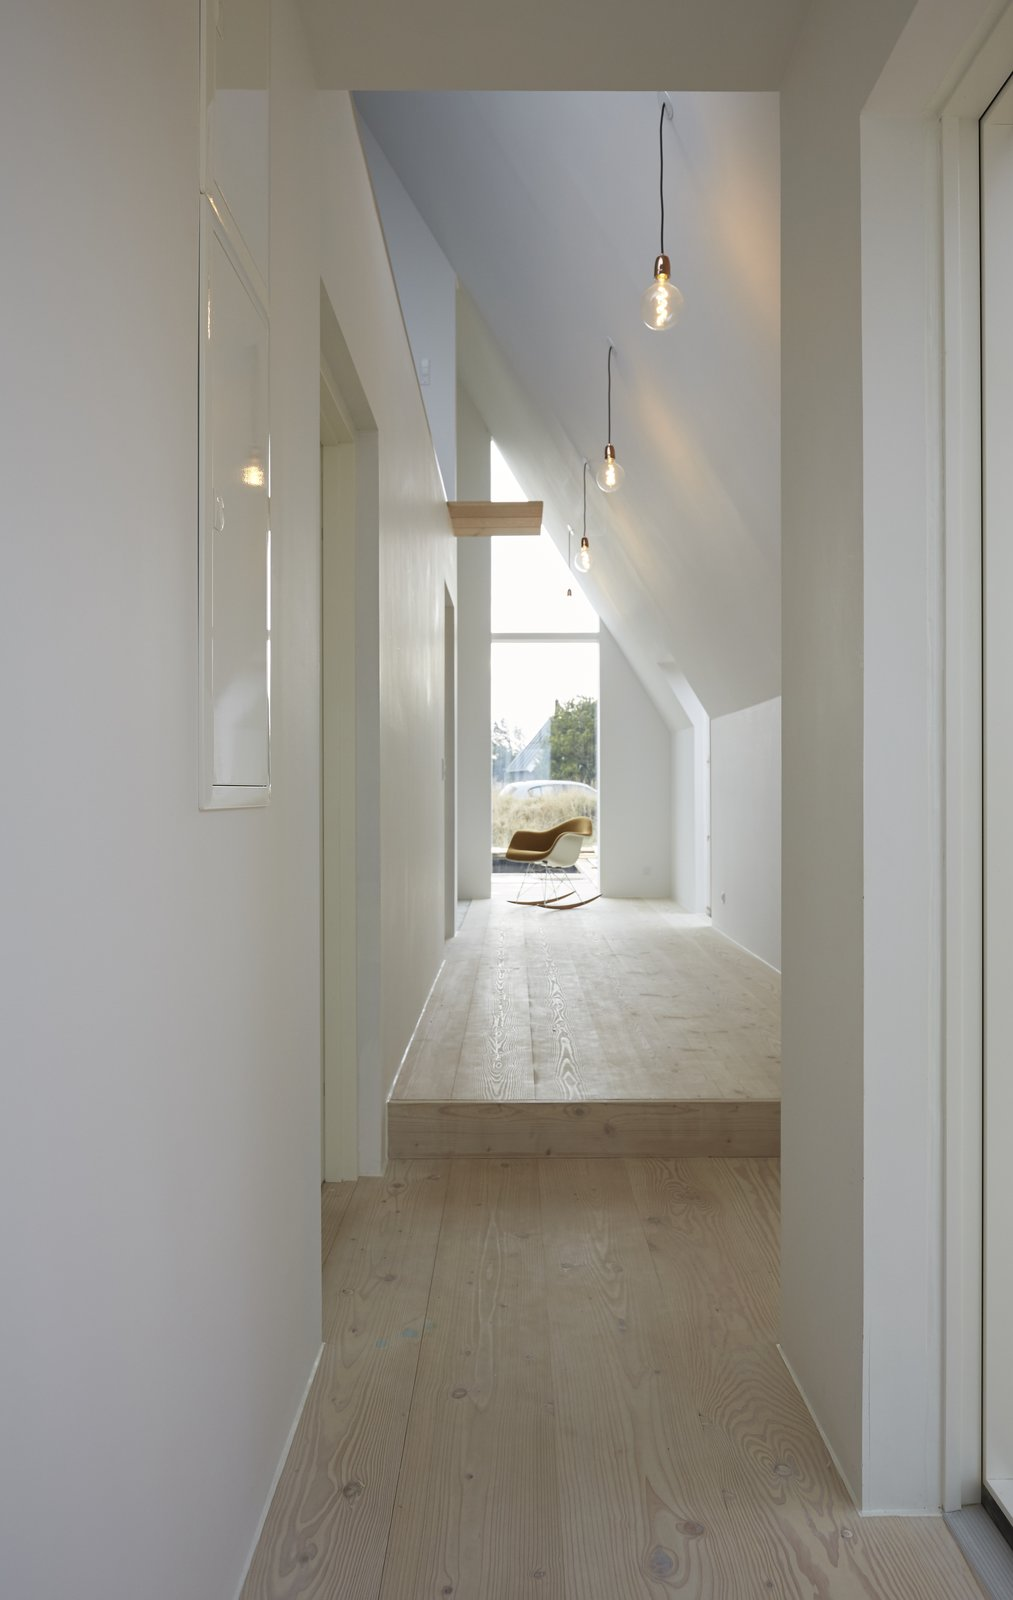 Hallway and Light Hardwood Floor Pale wooden floors and white walls brighten the interiors.  Photo 8 of 11 in Rent This Danish A-Frame For Your Next Nordic Escape